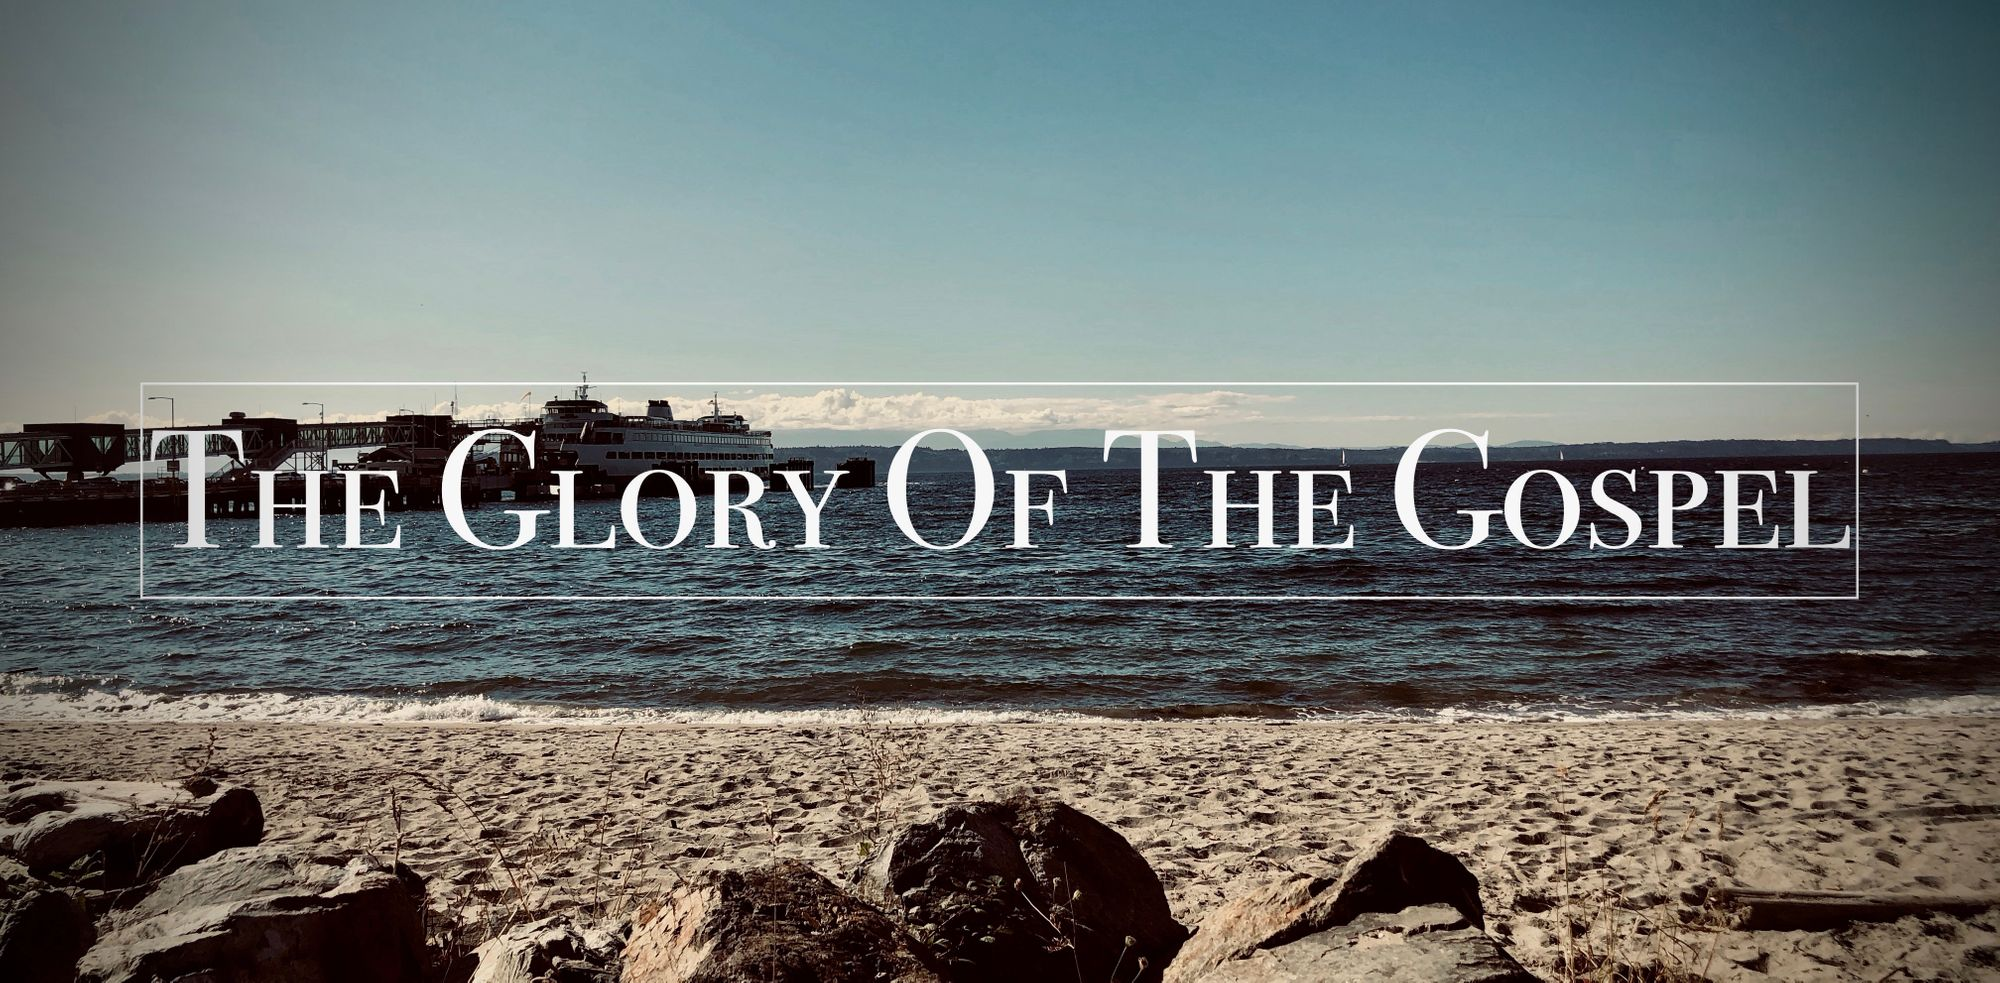 The Glory Of The Gospel